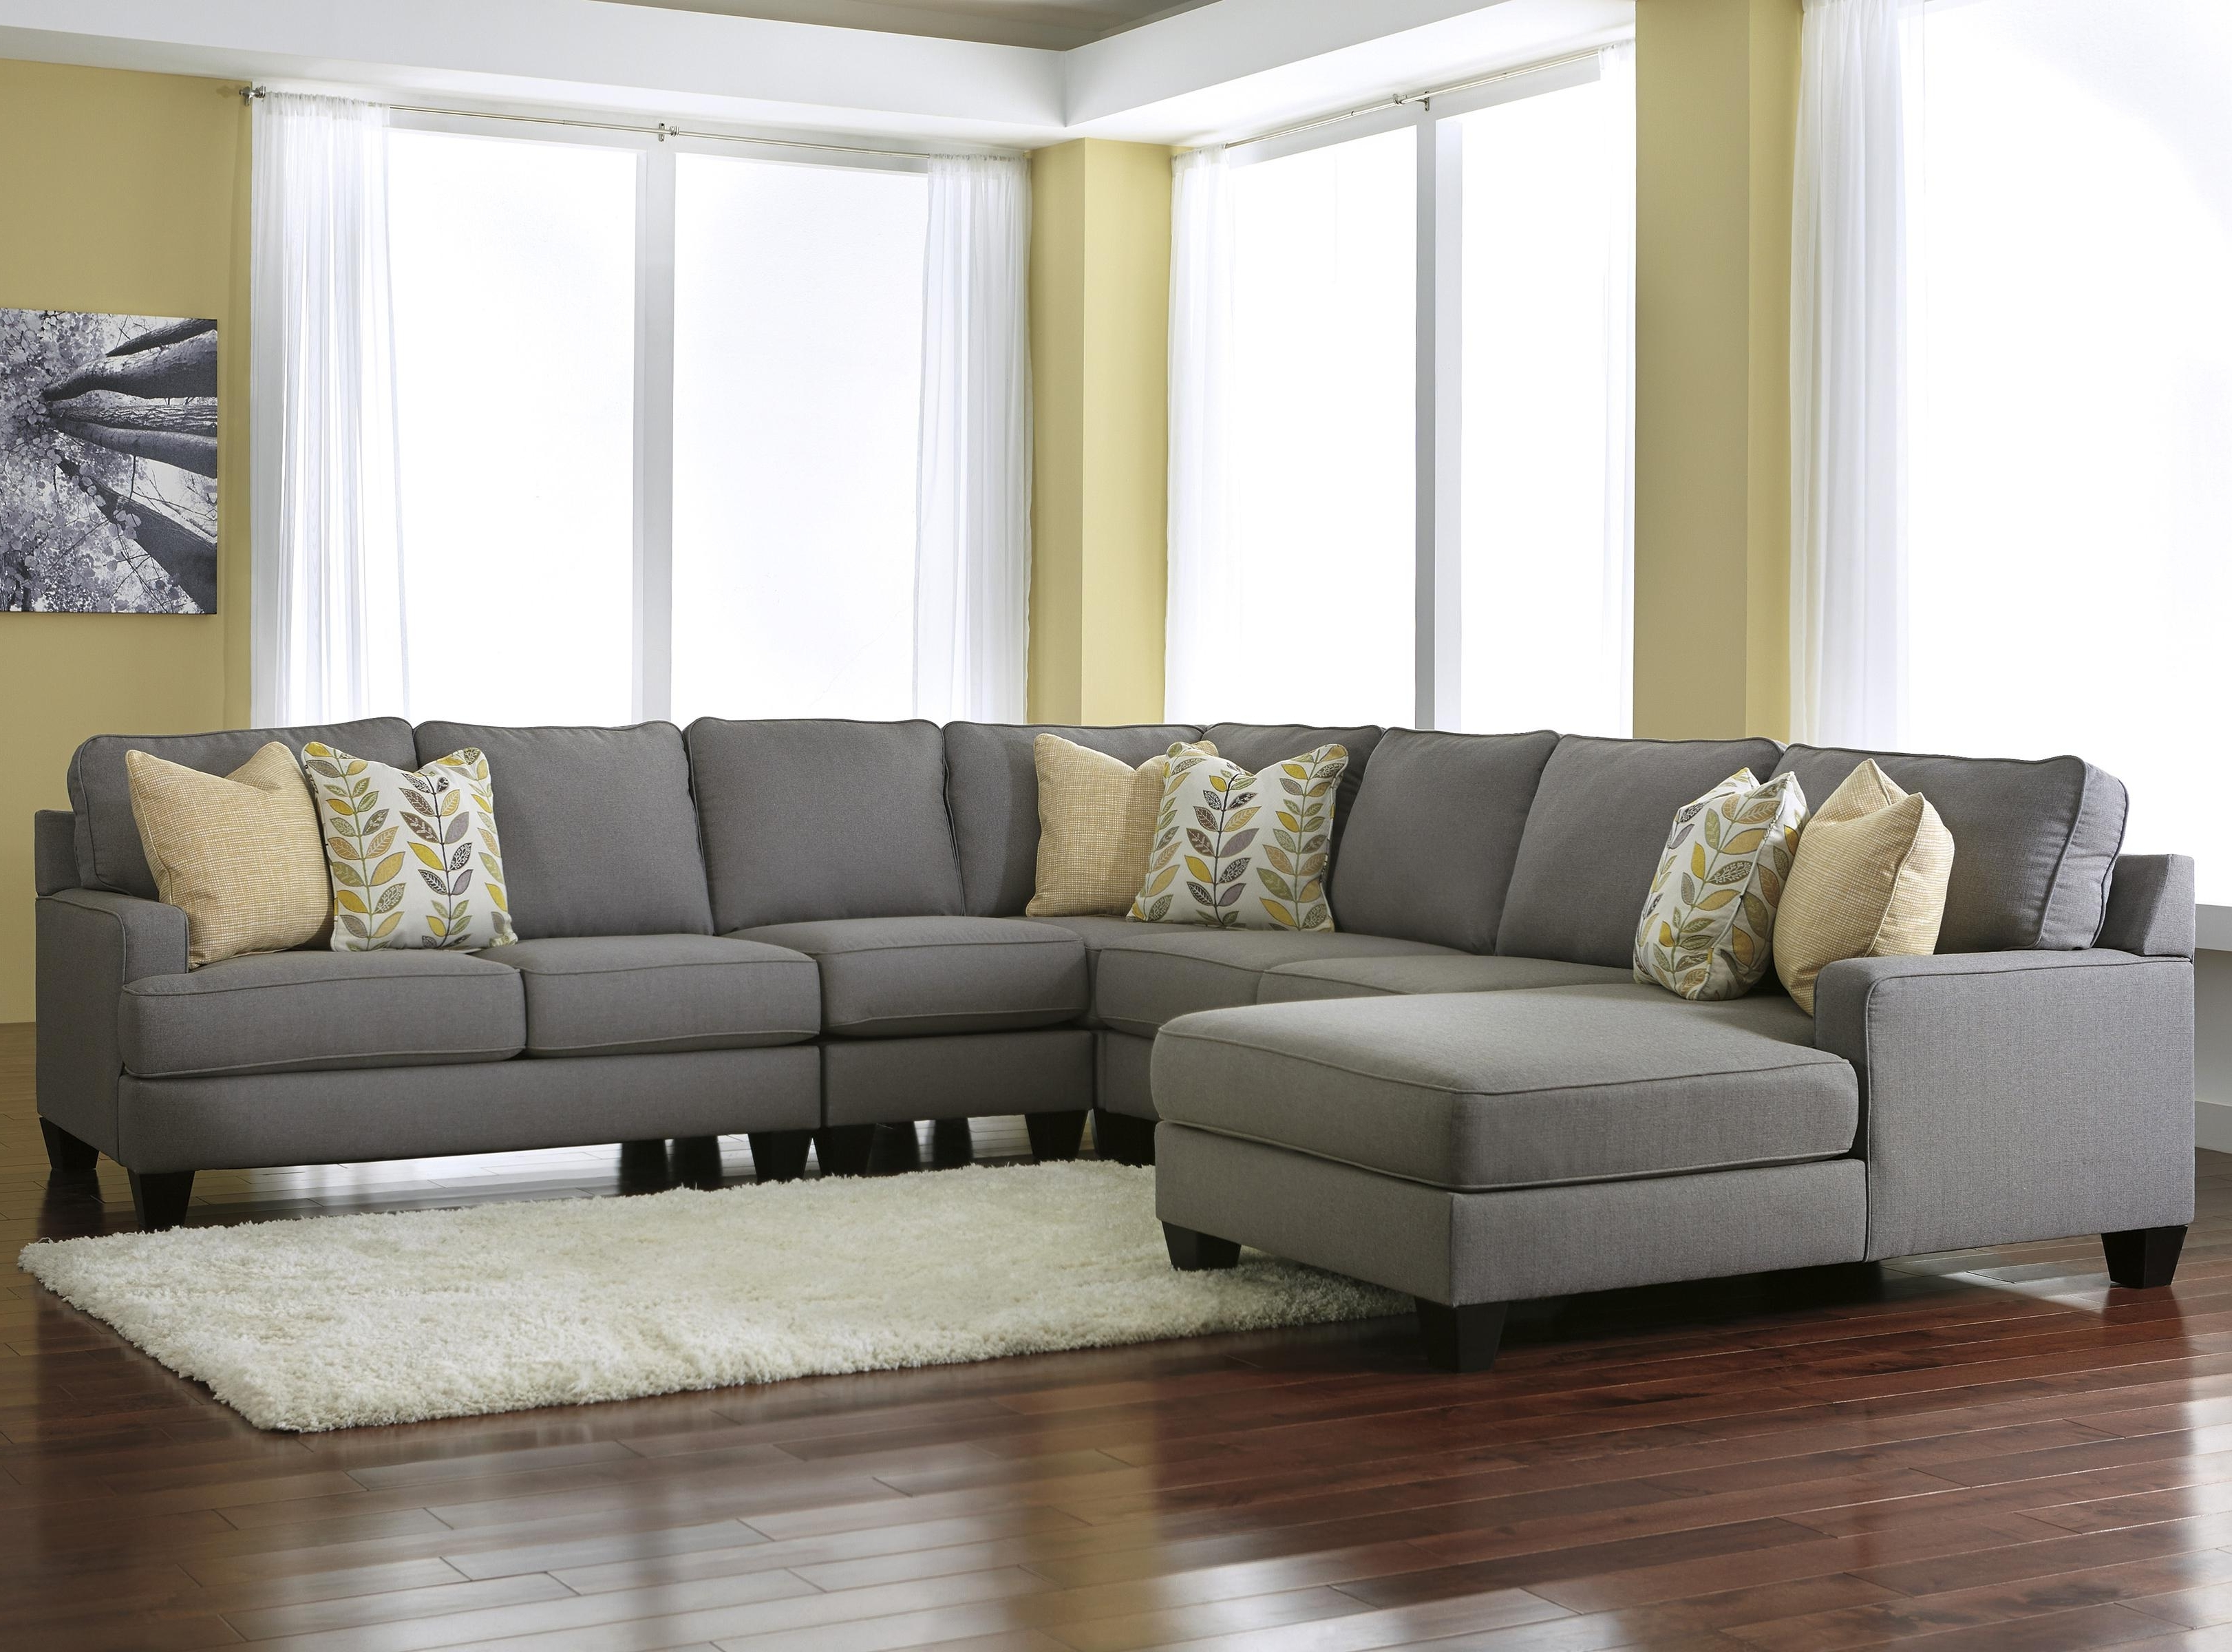 St Cloud Mn Sectional Sofas Intended For 2019 Signature Designashley Chamberly – Alloy Modern 5 Piece (Gallery 6 of 20)